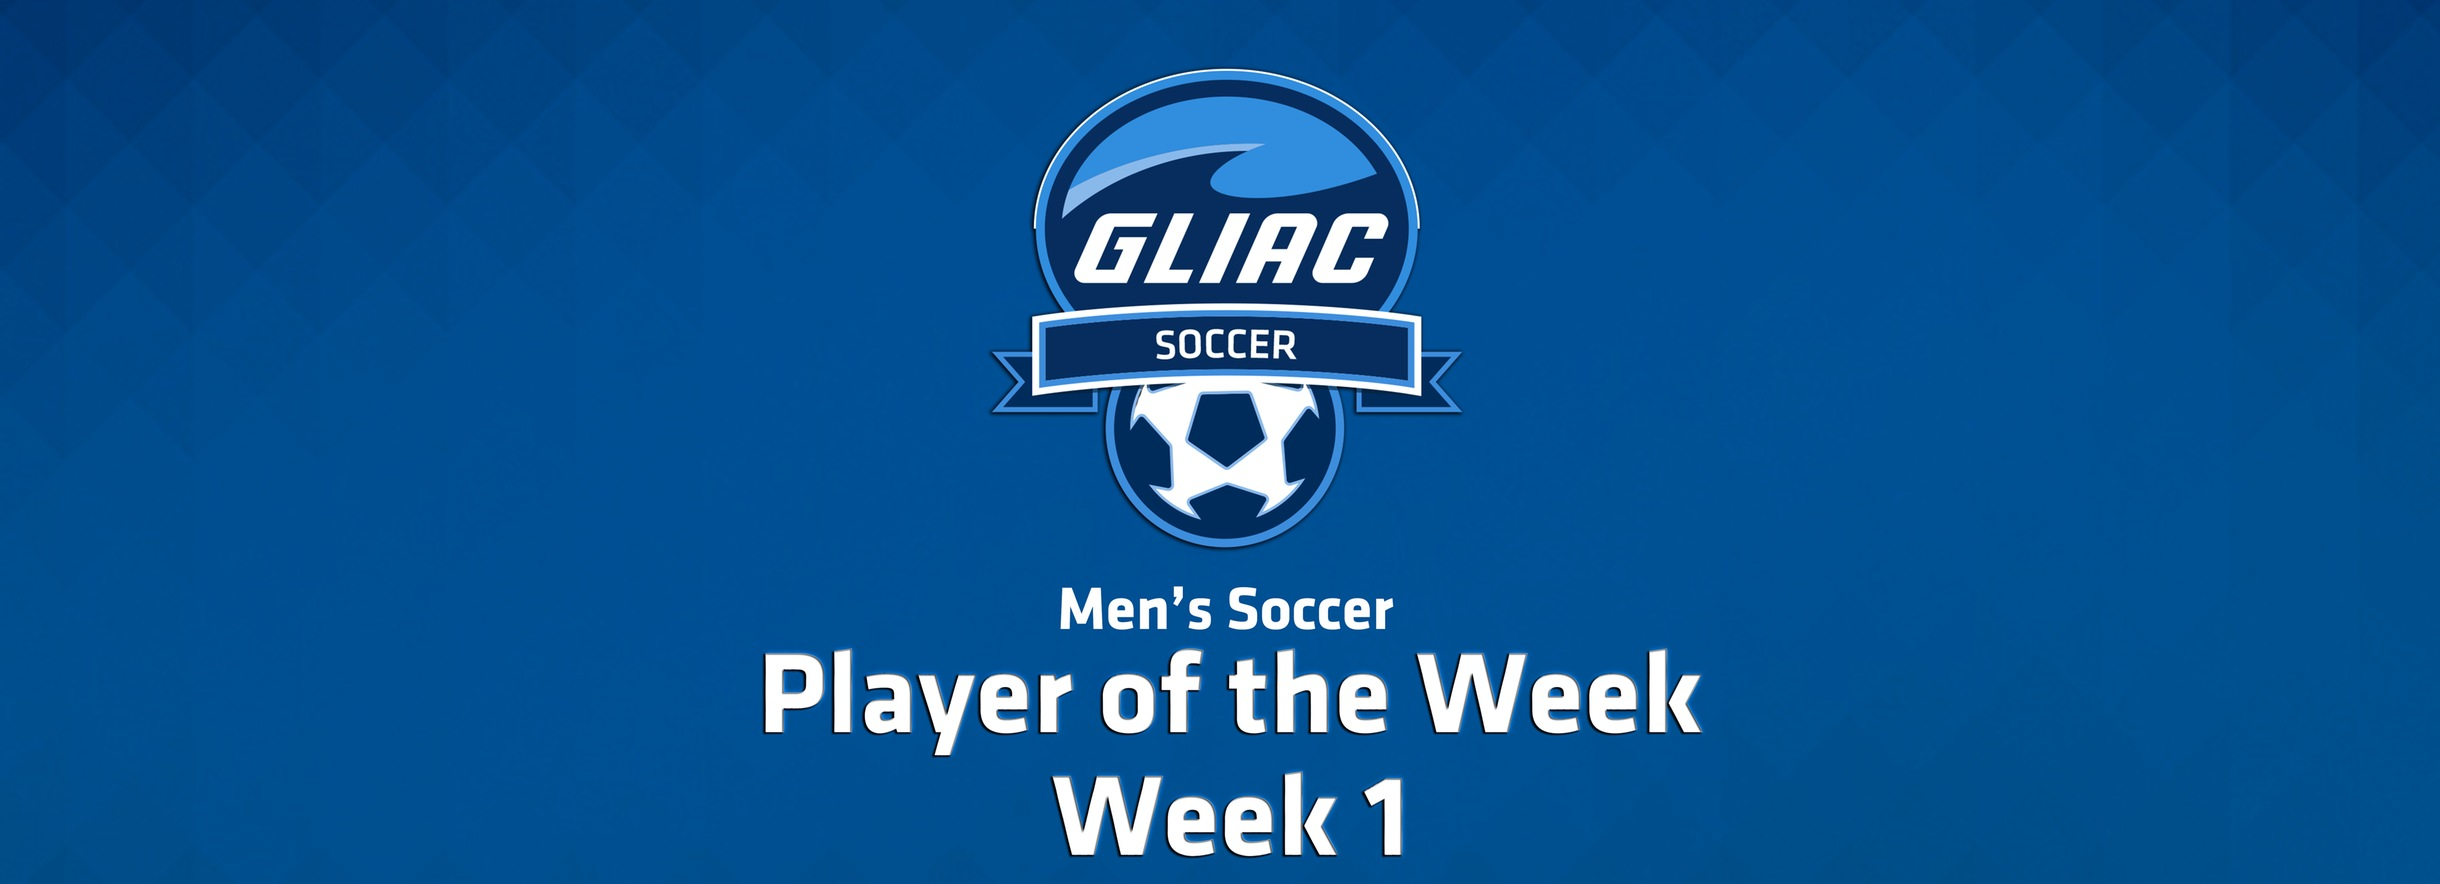 Northwood's Doyle, Parkside's Bruer Collect GLIAC Men's Soccer Weekly Honors